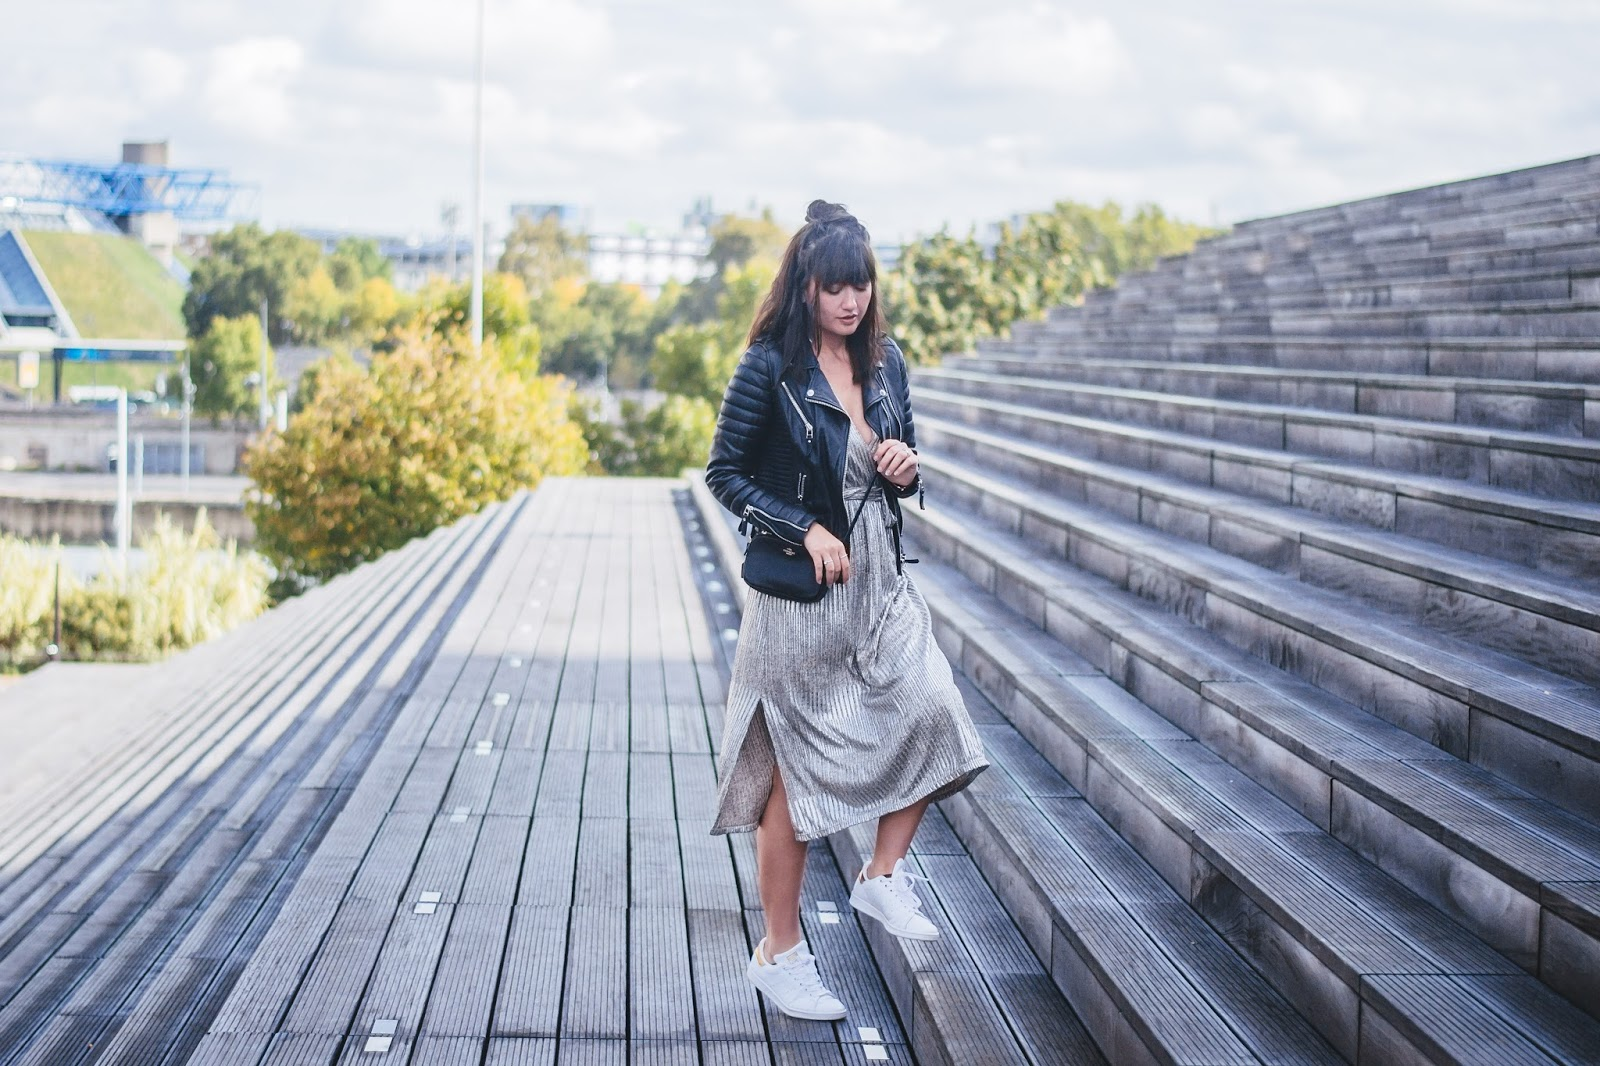 meetmeinparee-paris-style-look-mode-fashion-streetstyle-parisianchic-bloggerinparis